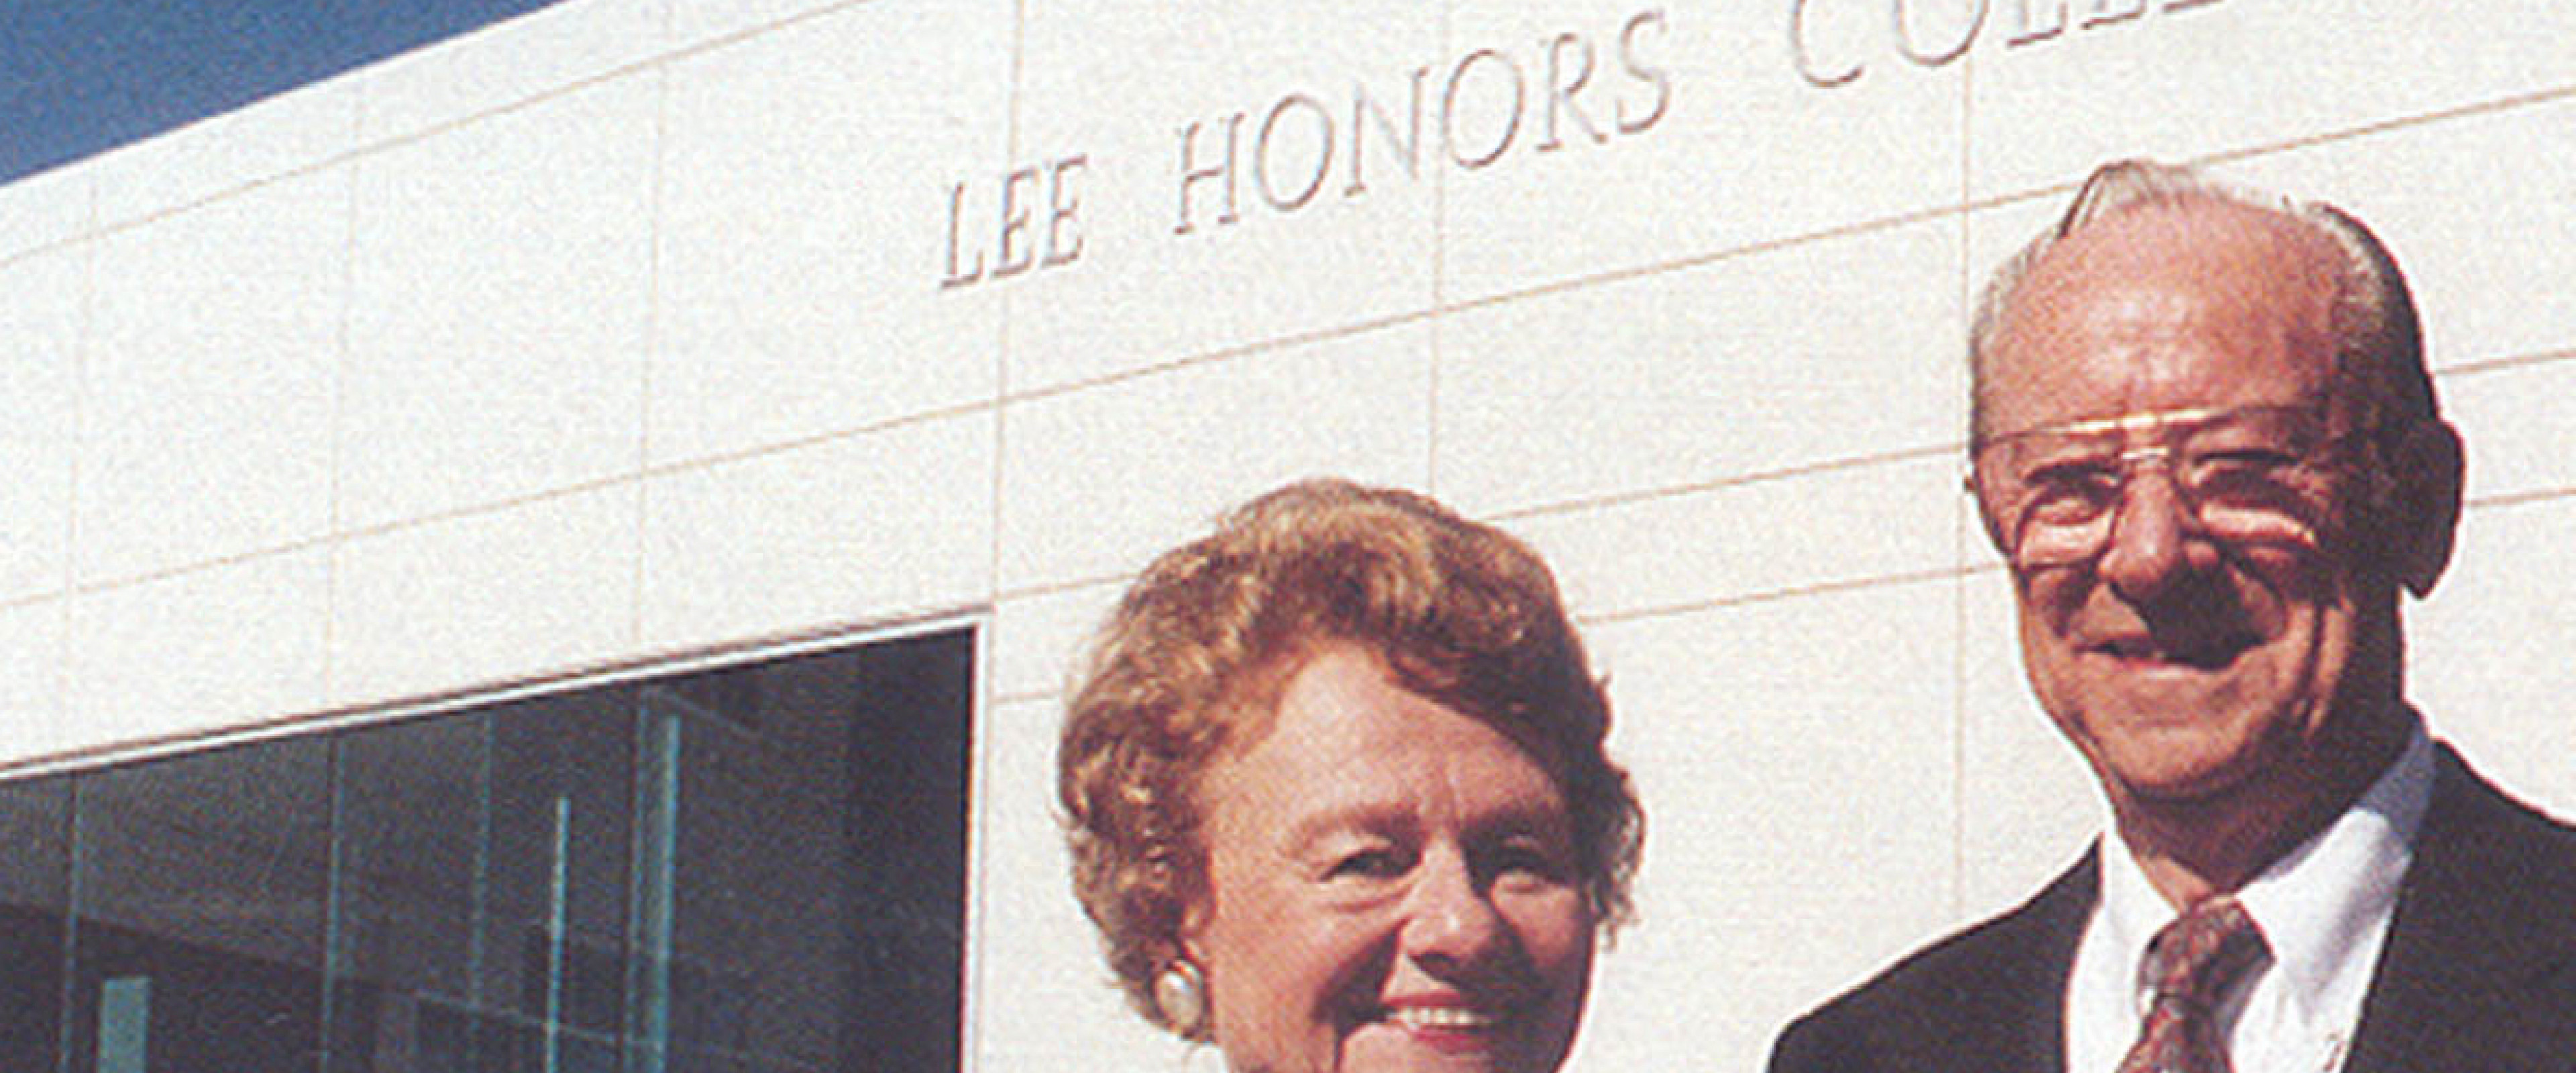 Head and shoulders of Carl and Winifred Lee standing in front of the Lee Honors College building.